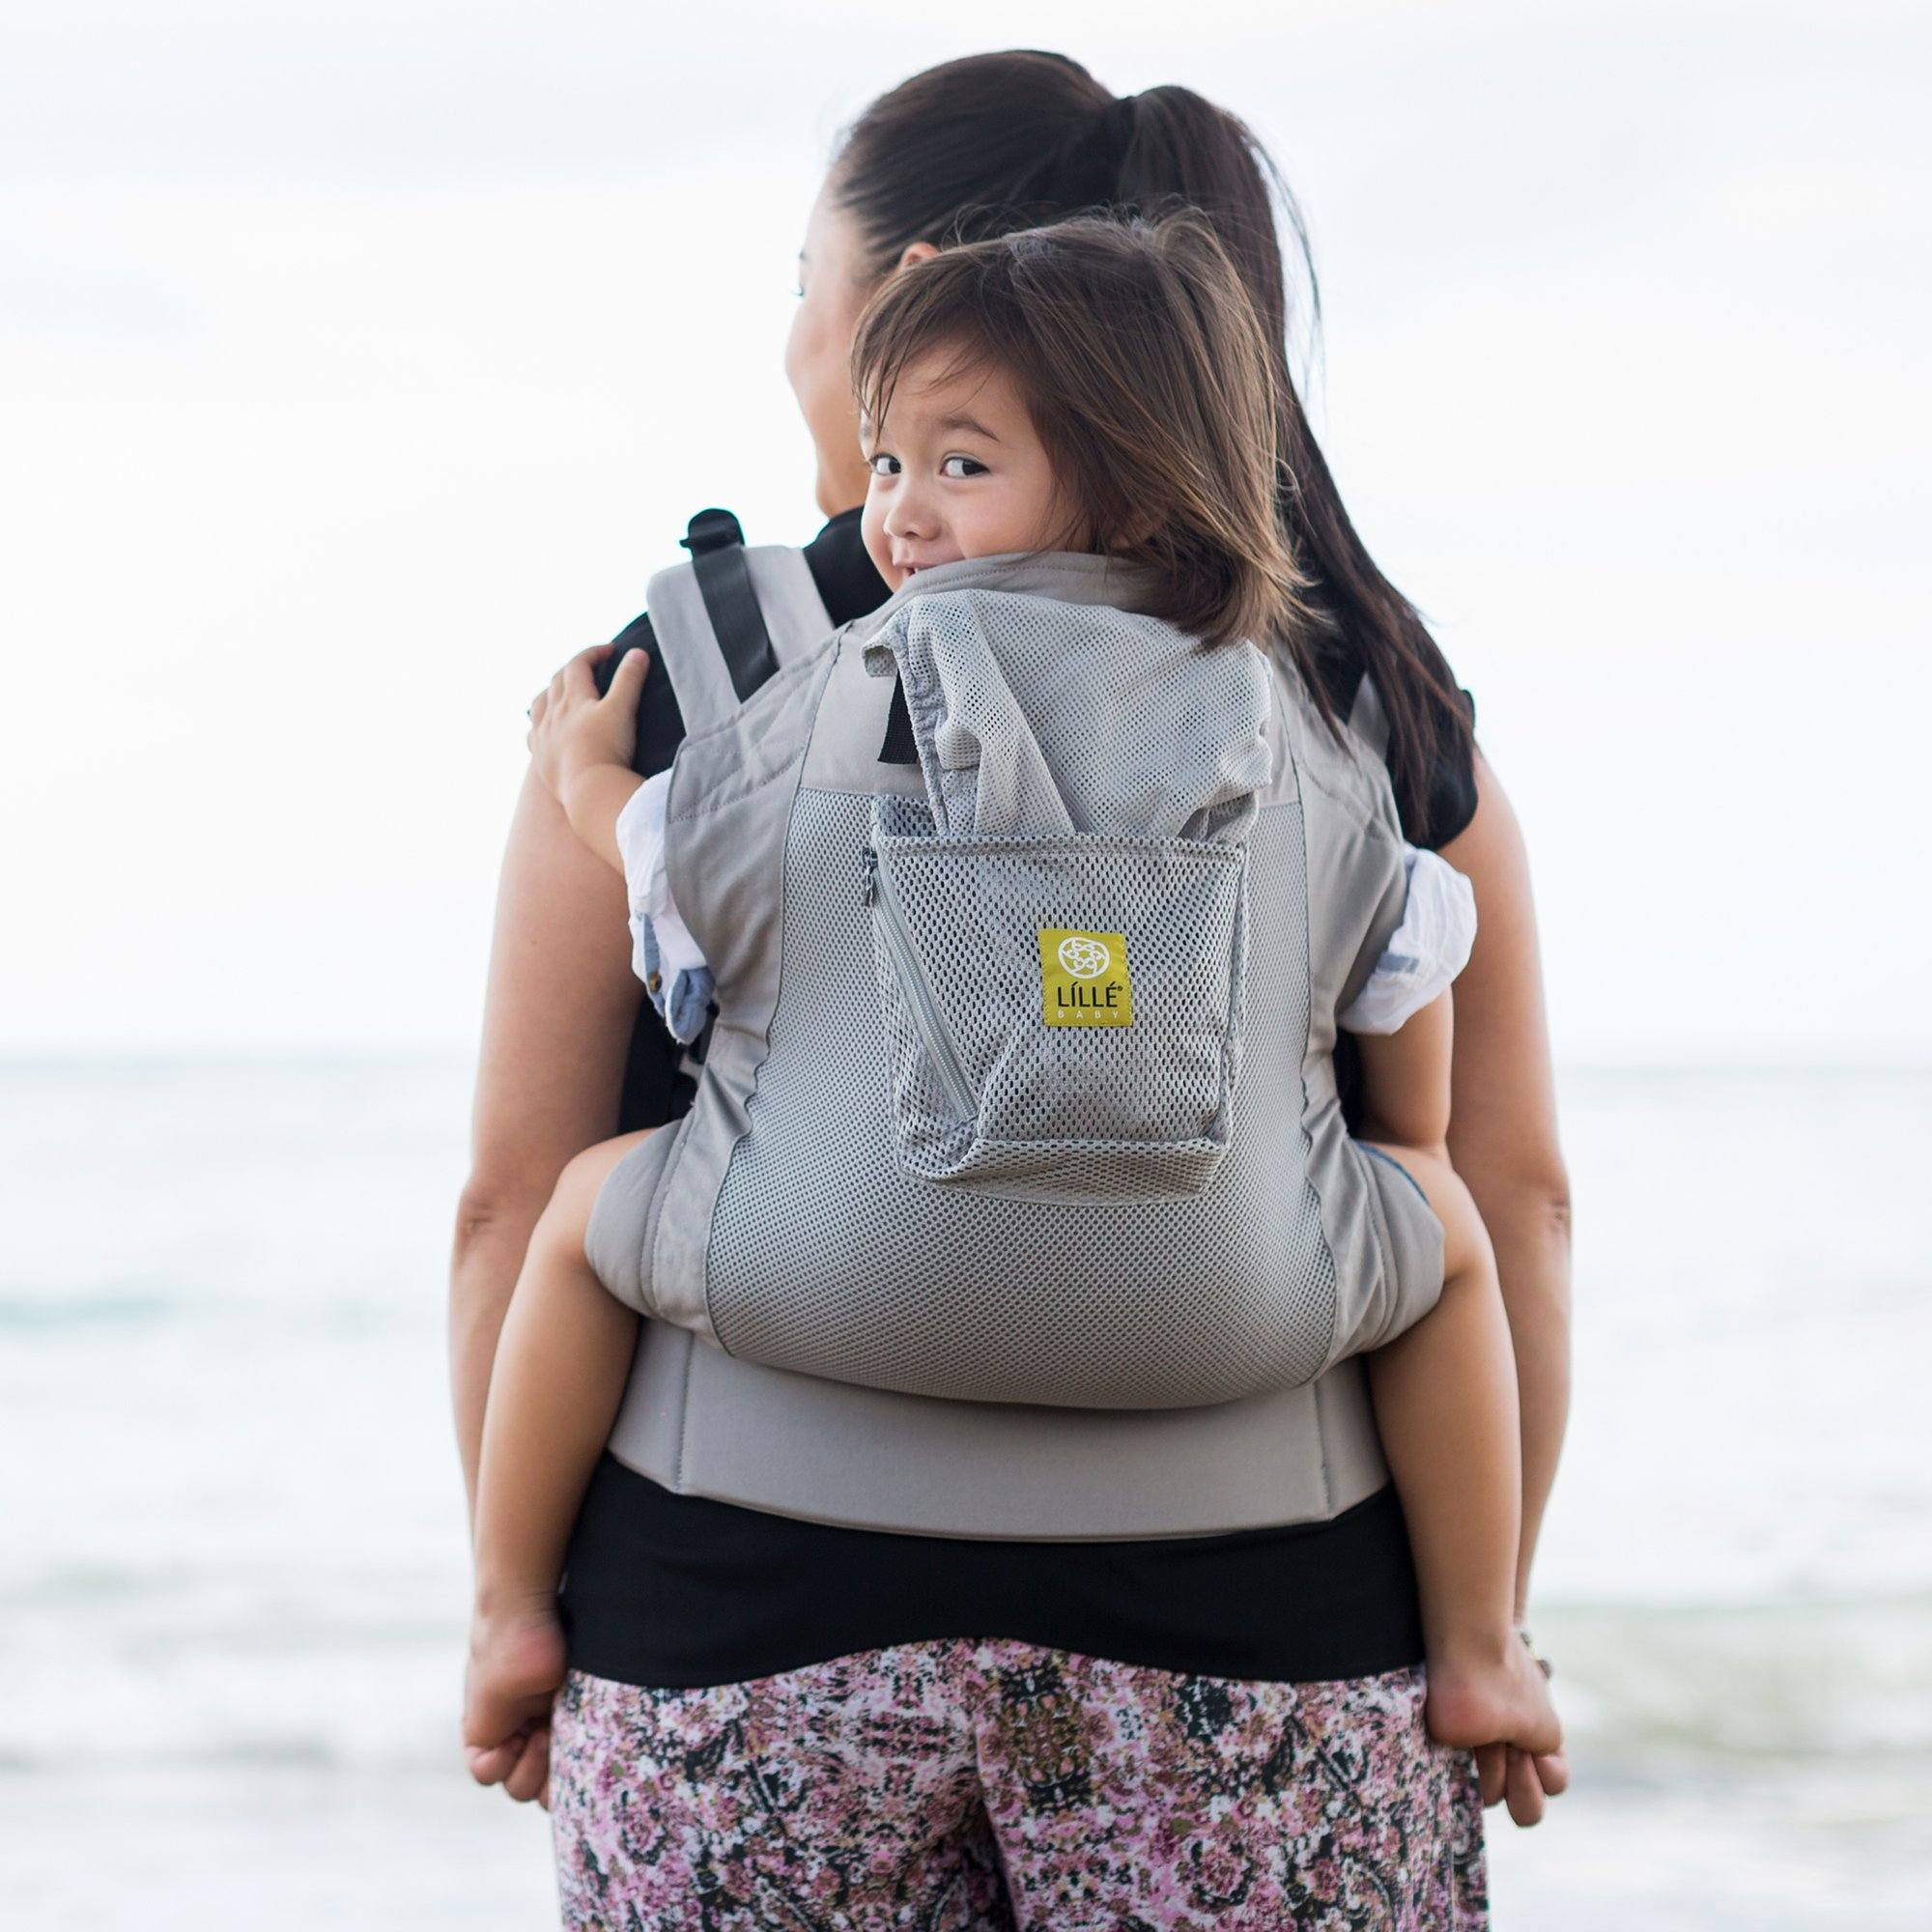 Carryon Airflow Toddler Child Carrier Up To 60 Lbs Lillebaby